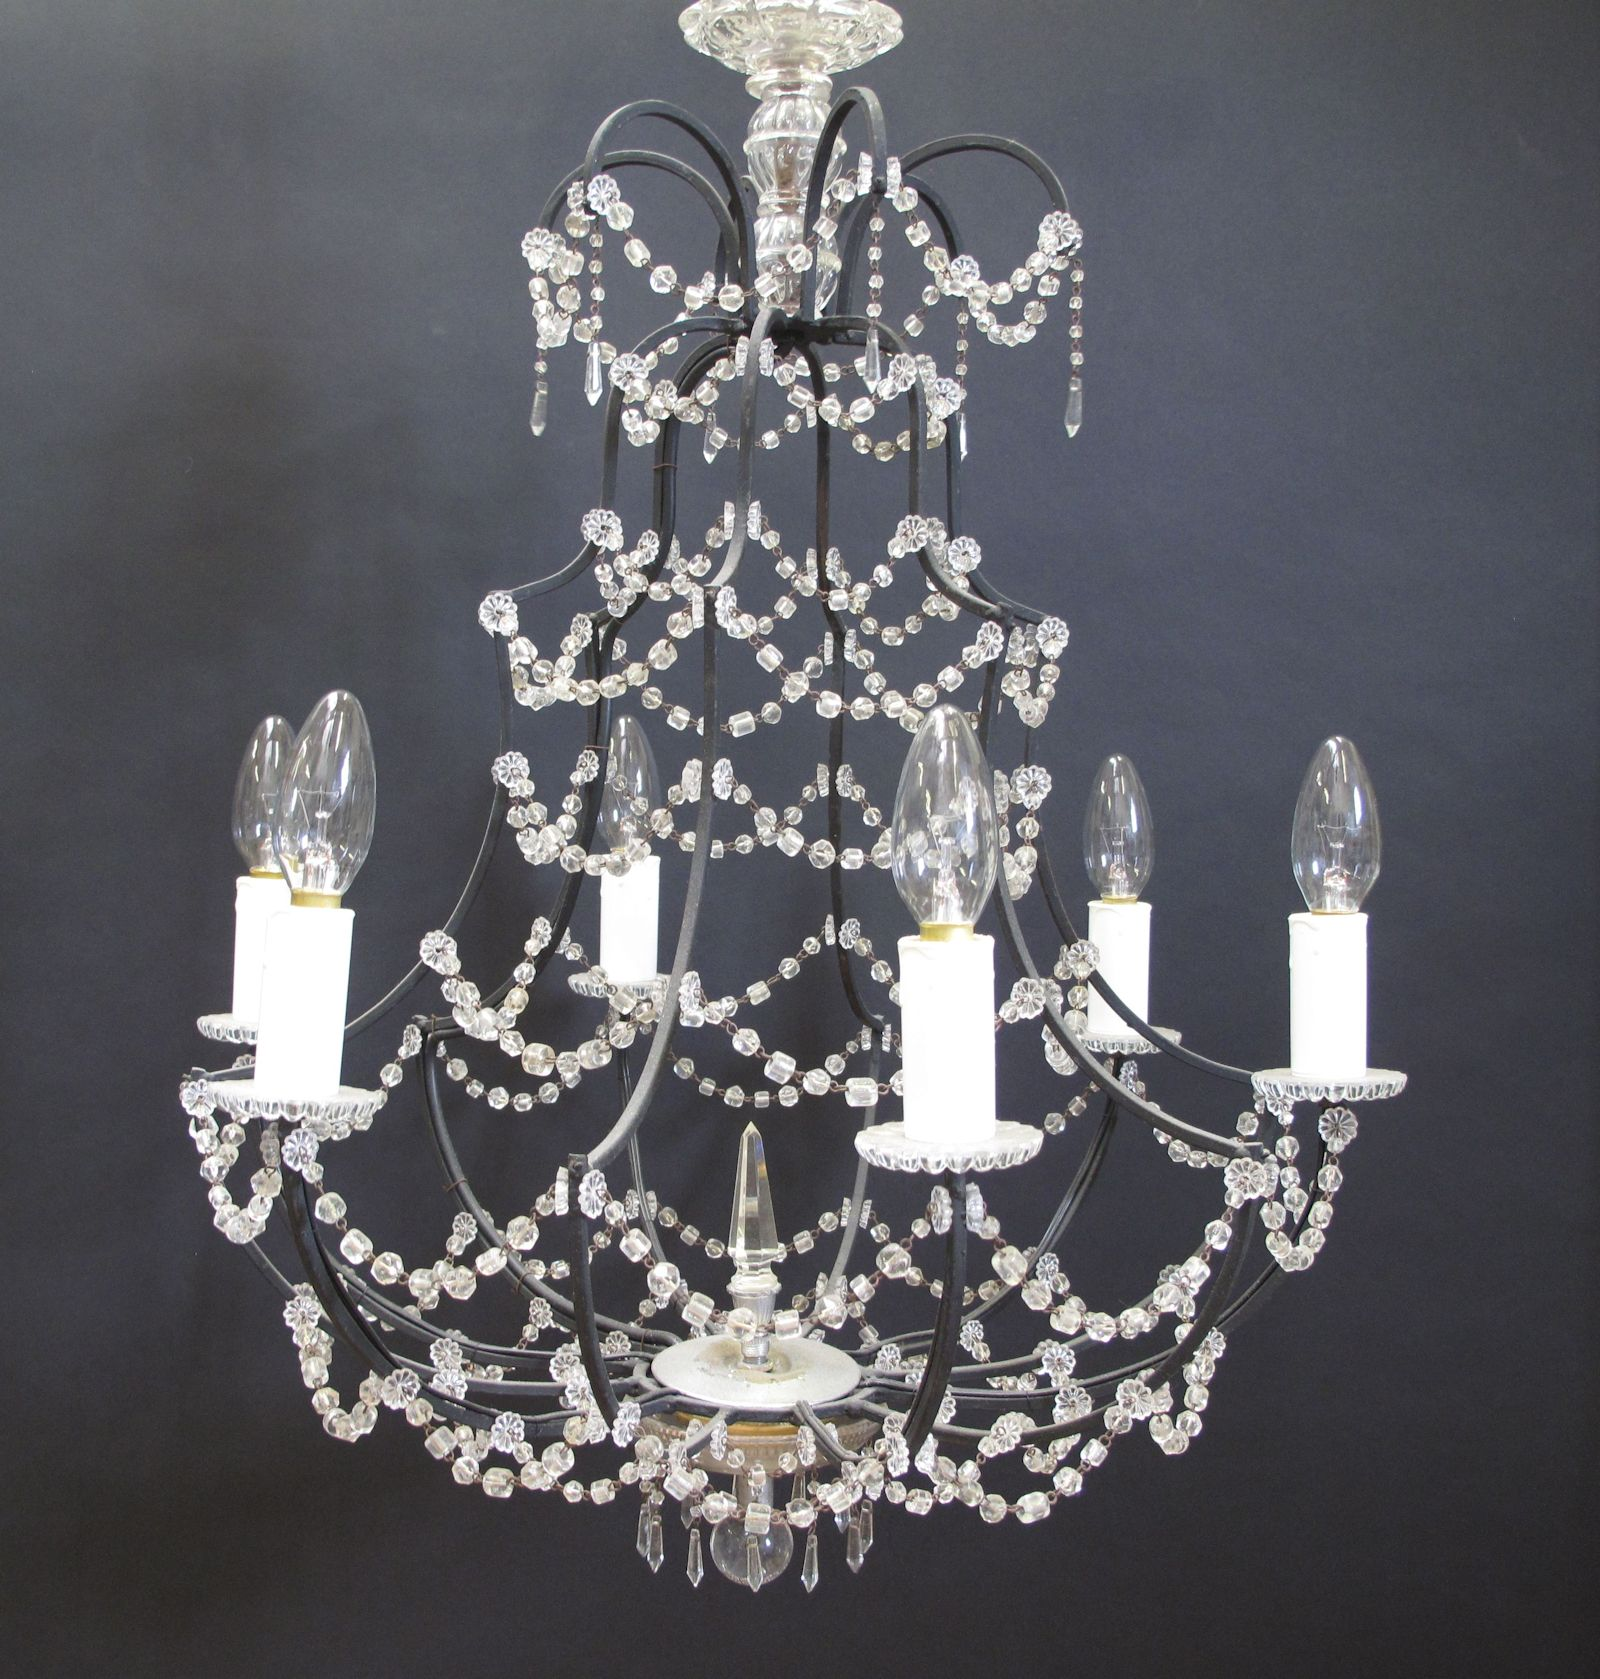 G p cohn antique chandeliers repairs restoration - Chandelier glass beads ...